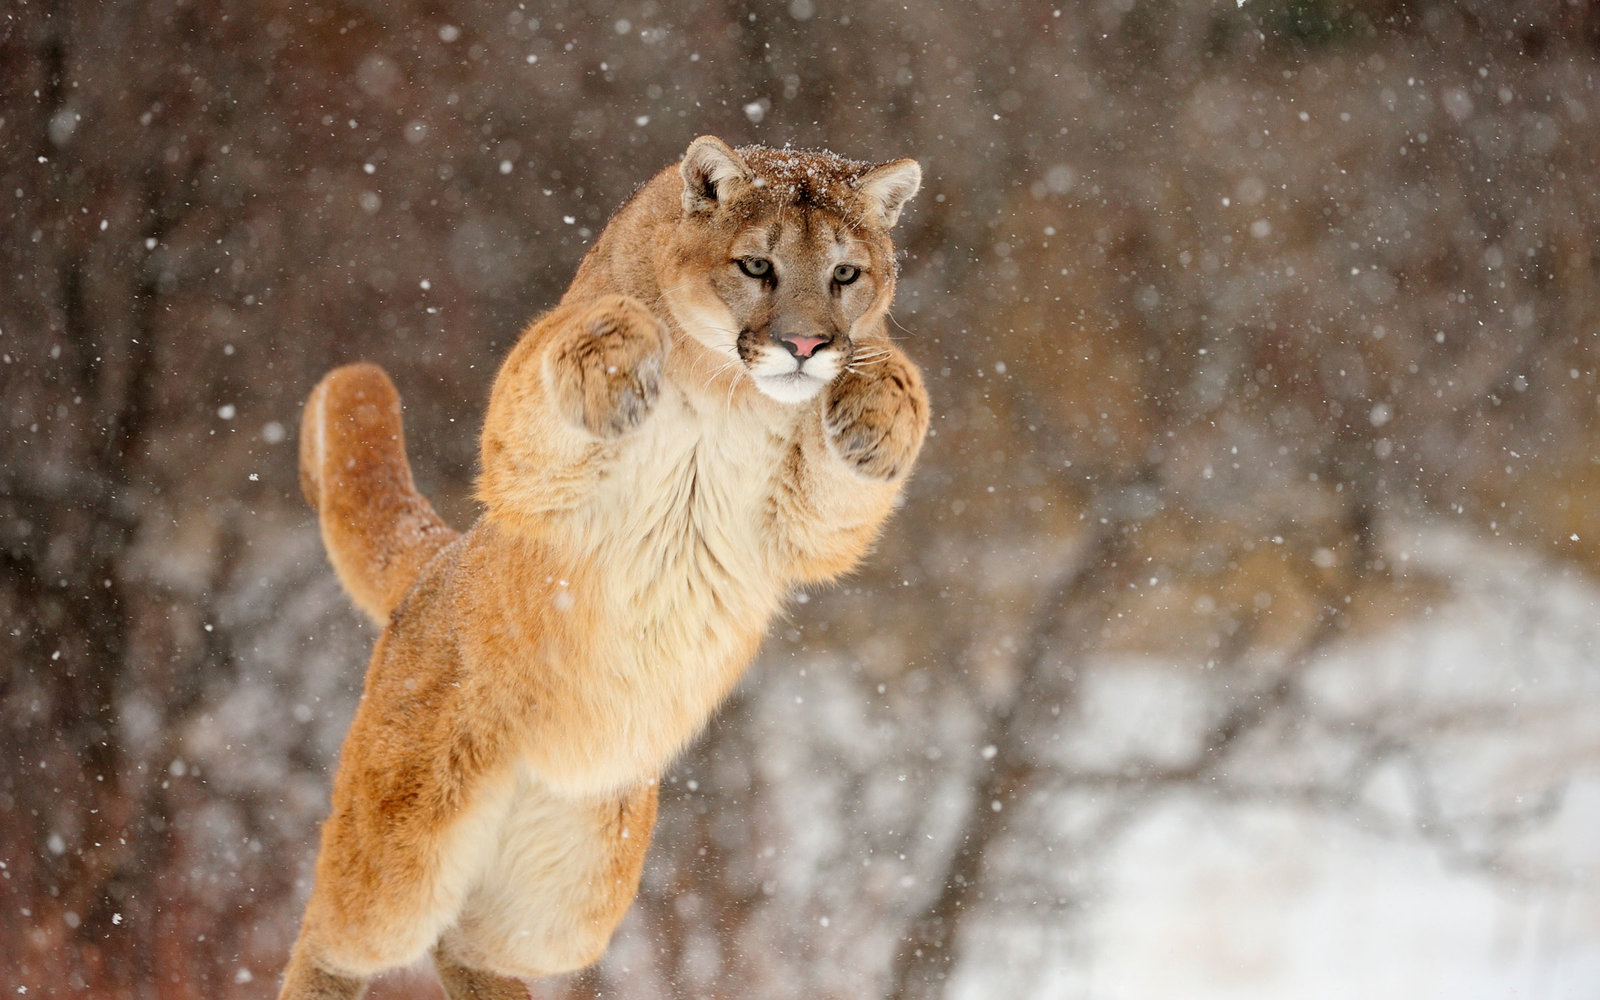 Here's What to Do If You're Attacked by a Mountain Lion